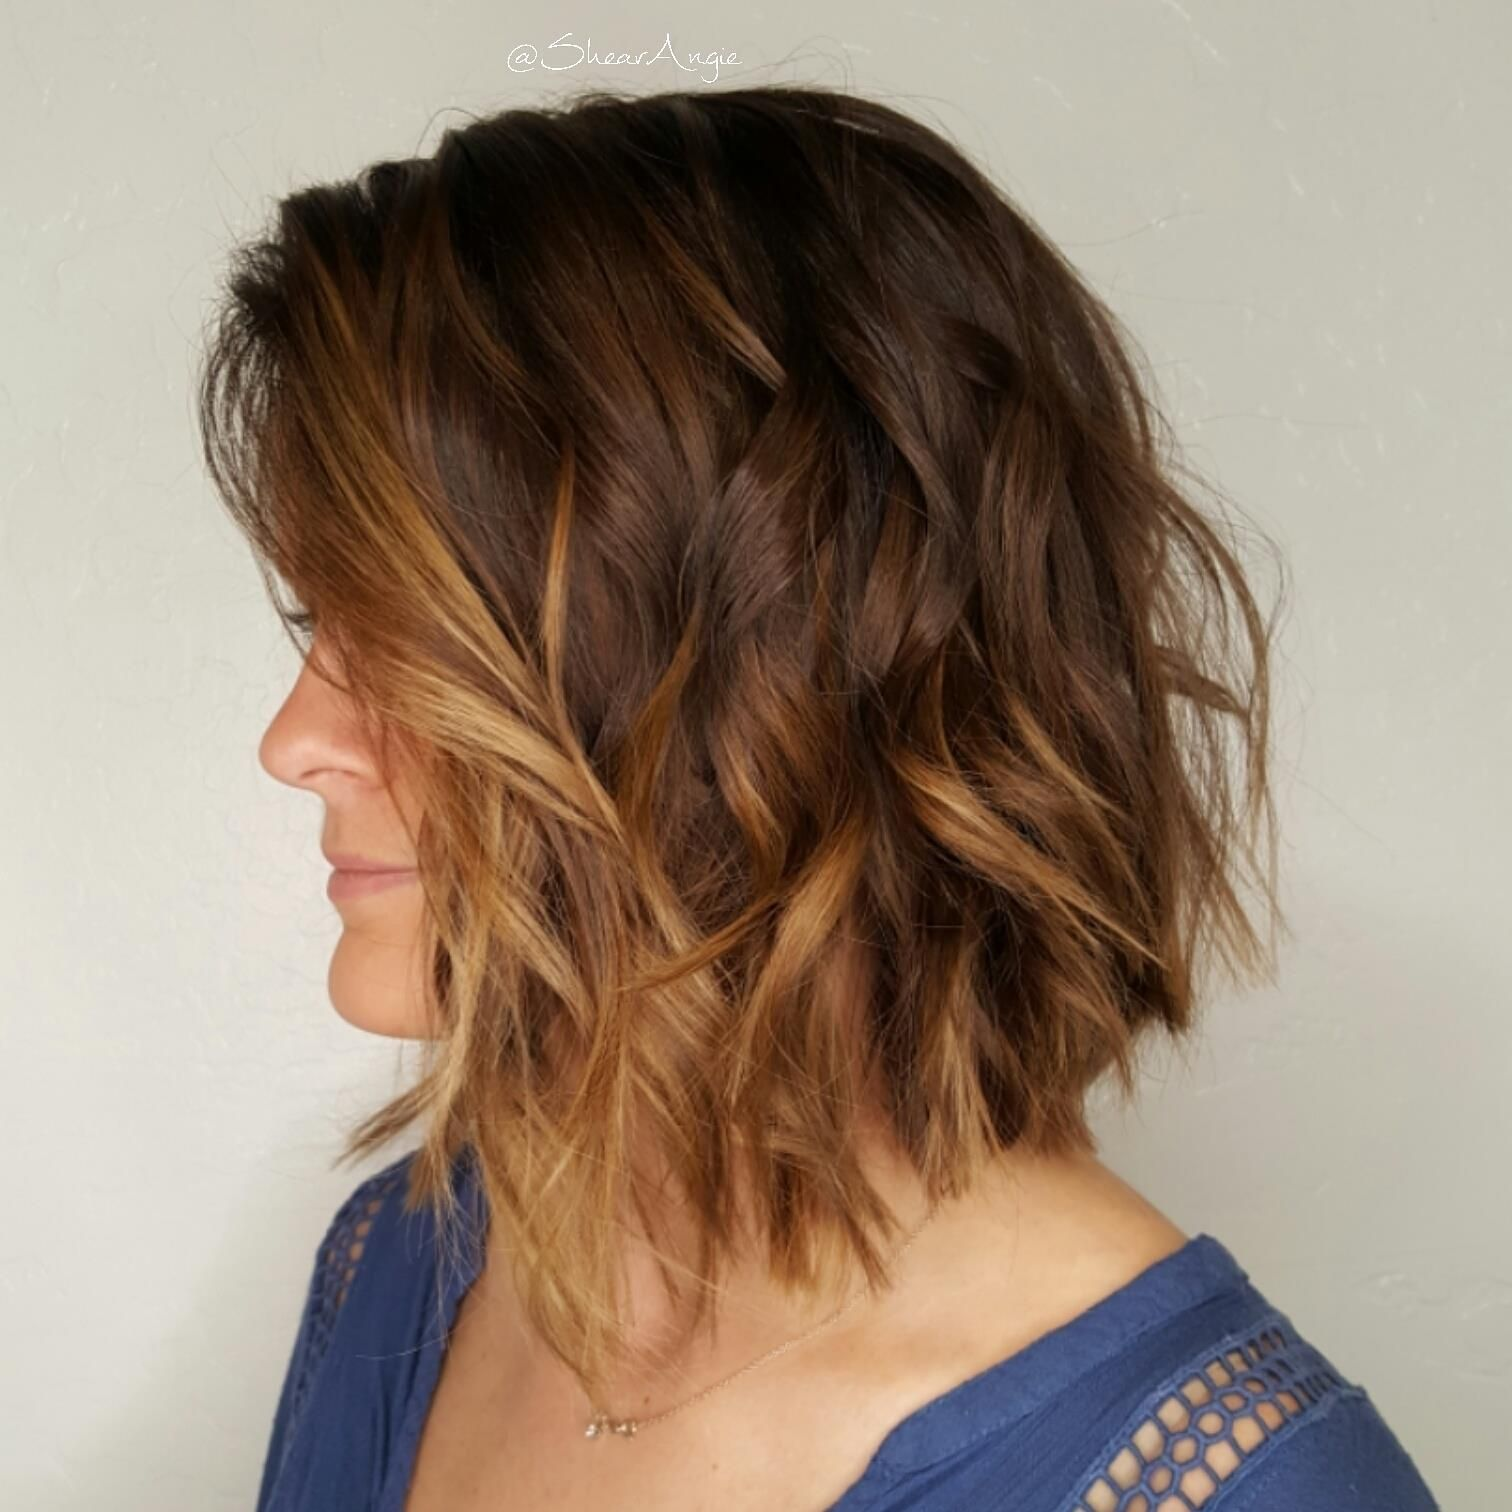 Balayage (With images) Long hair styles, Short hair